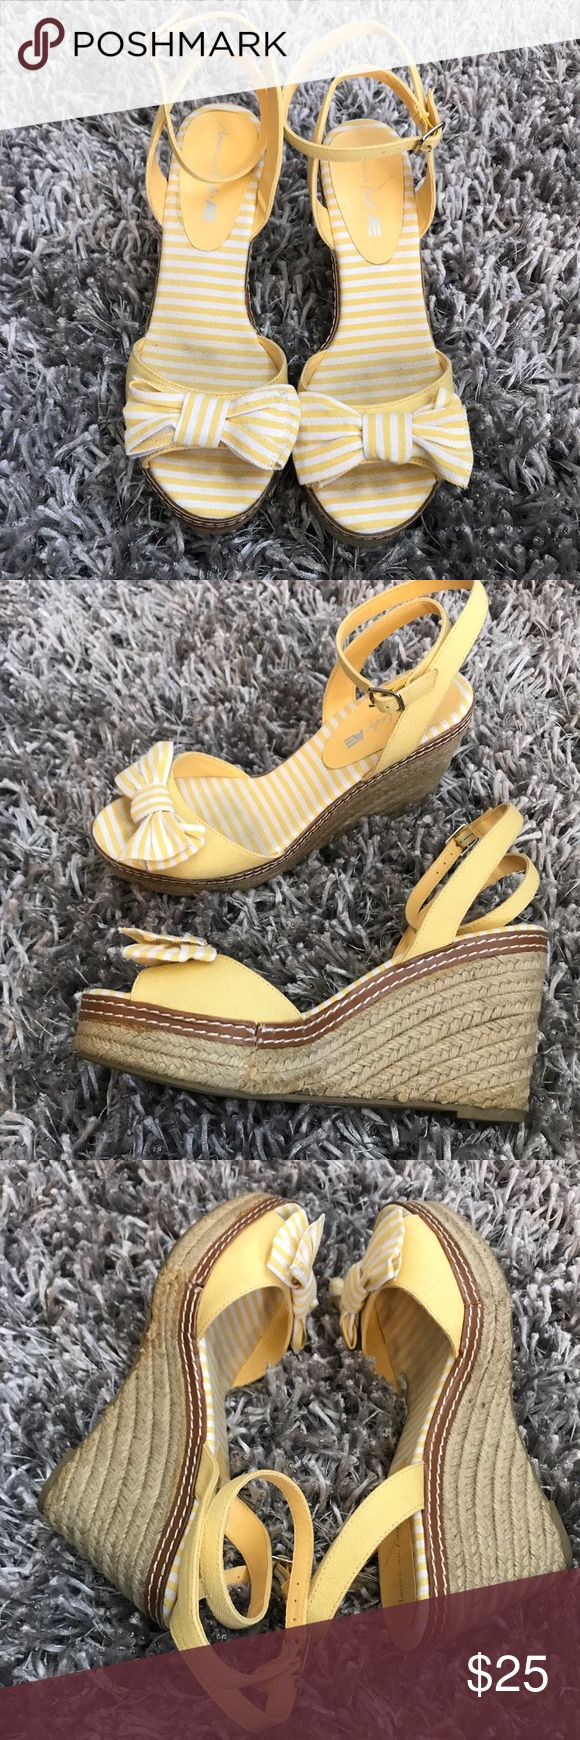 AE Outfitters Wedge Sandal Heel Yellow Stripe 8 ⭐️️the perfect summer shoe  ⭐️️wrap around ankle strap  ⭐️️open toe ⭐️️Women's Size 8 ⭐️️see pics for wear  050617-10 t6 🚫trades please American Eagle Outfitters Shoes Sandals